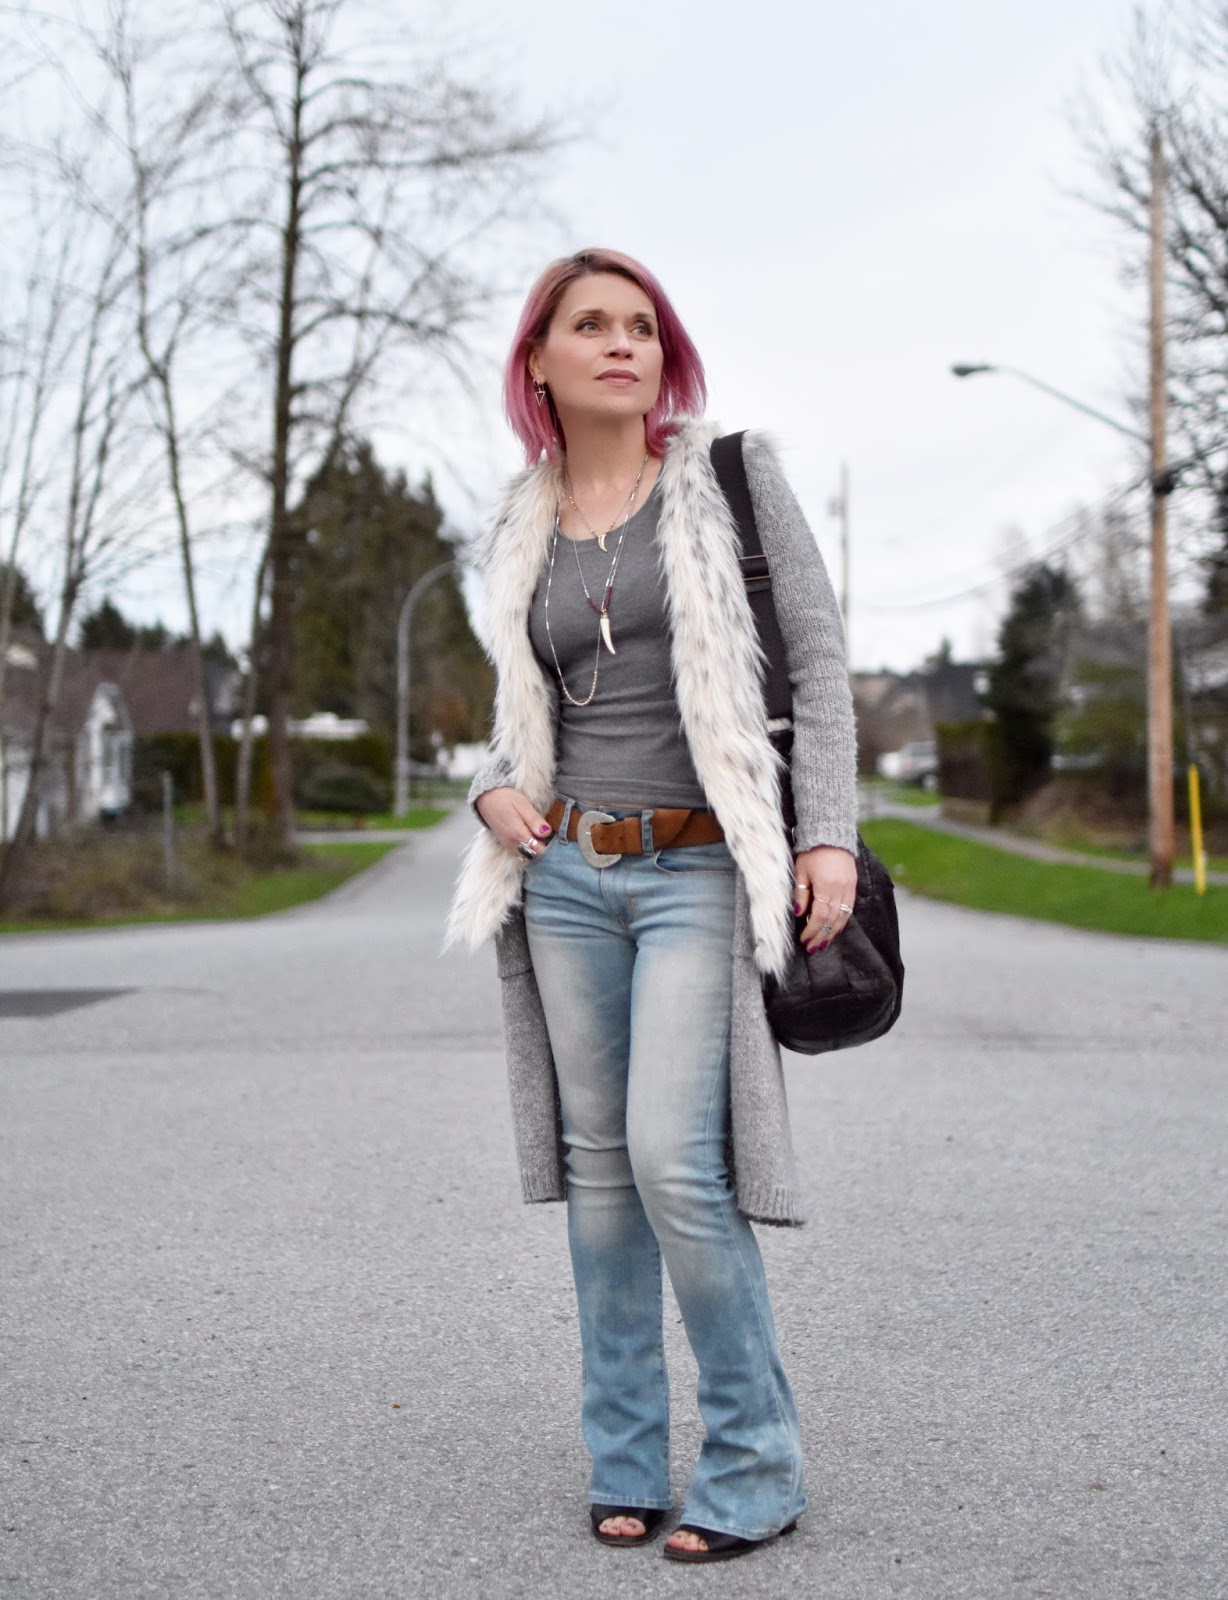 Monika Faulkner outfit inspiration - styling a tank top and flare jeans with a long cardigan and faux-fur vest